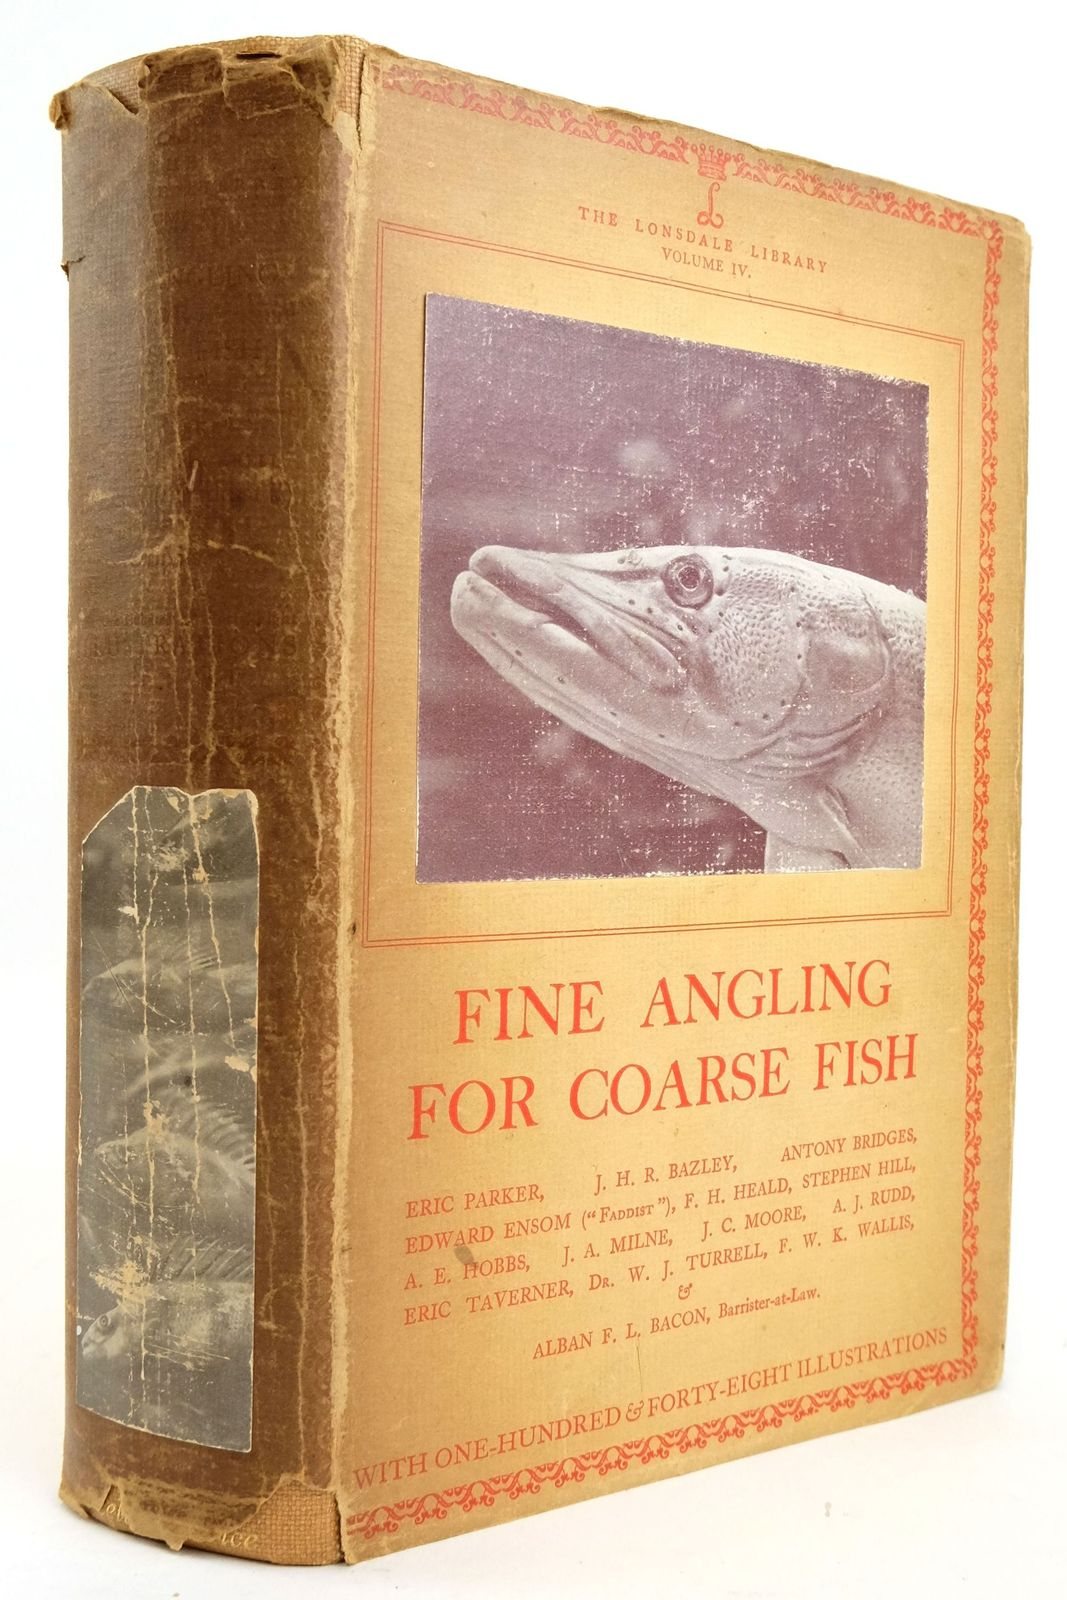 Photo of FINE ANGLING FOR COARSE FISH - LONSDALE LIBRARY VOL IV- Stock Number: 1820169